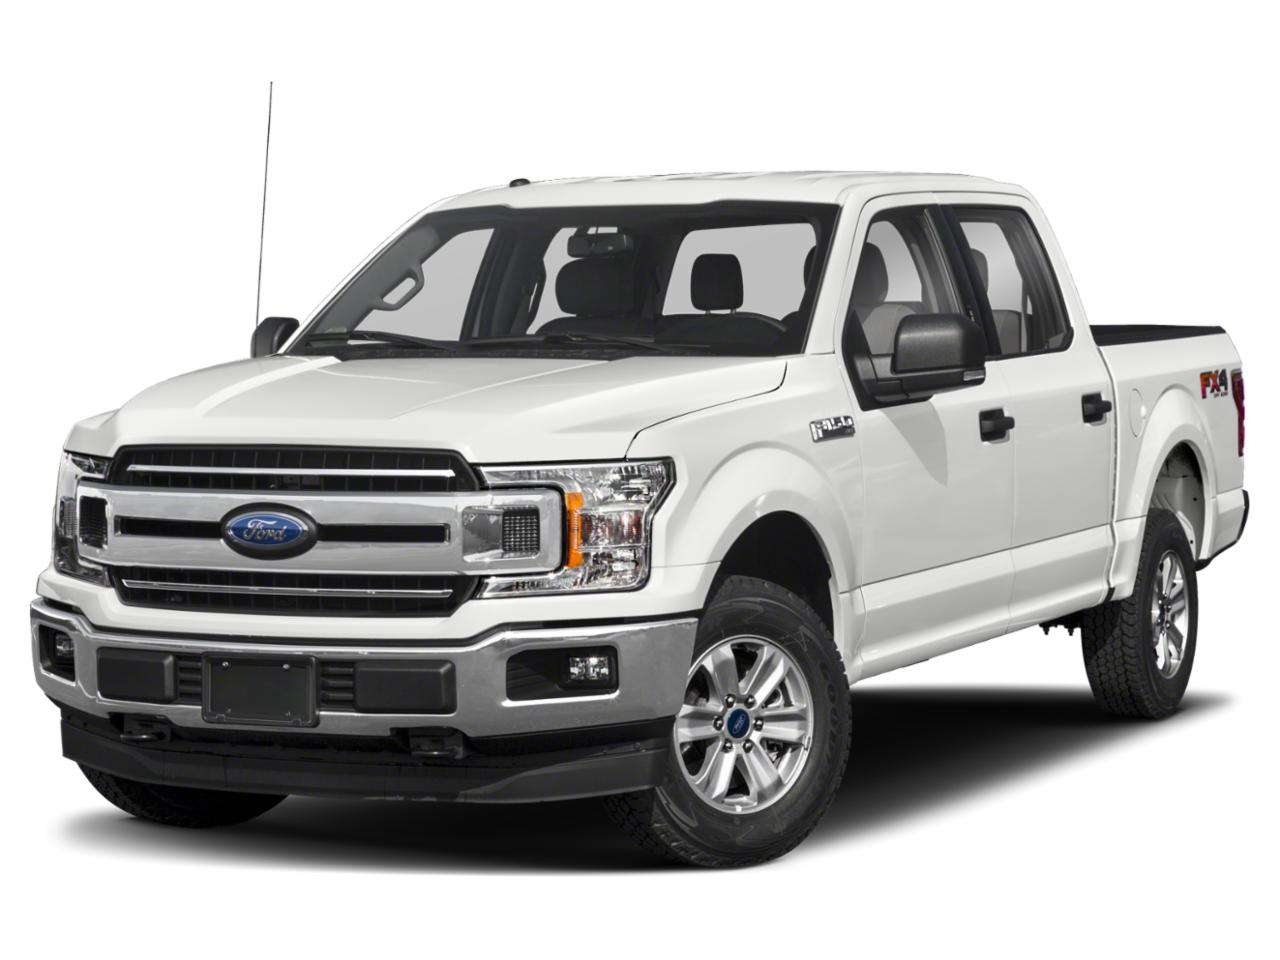 2020 Ford F-150 Vehicle Photo in Gainesville, FL 32609